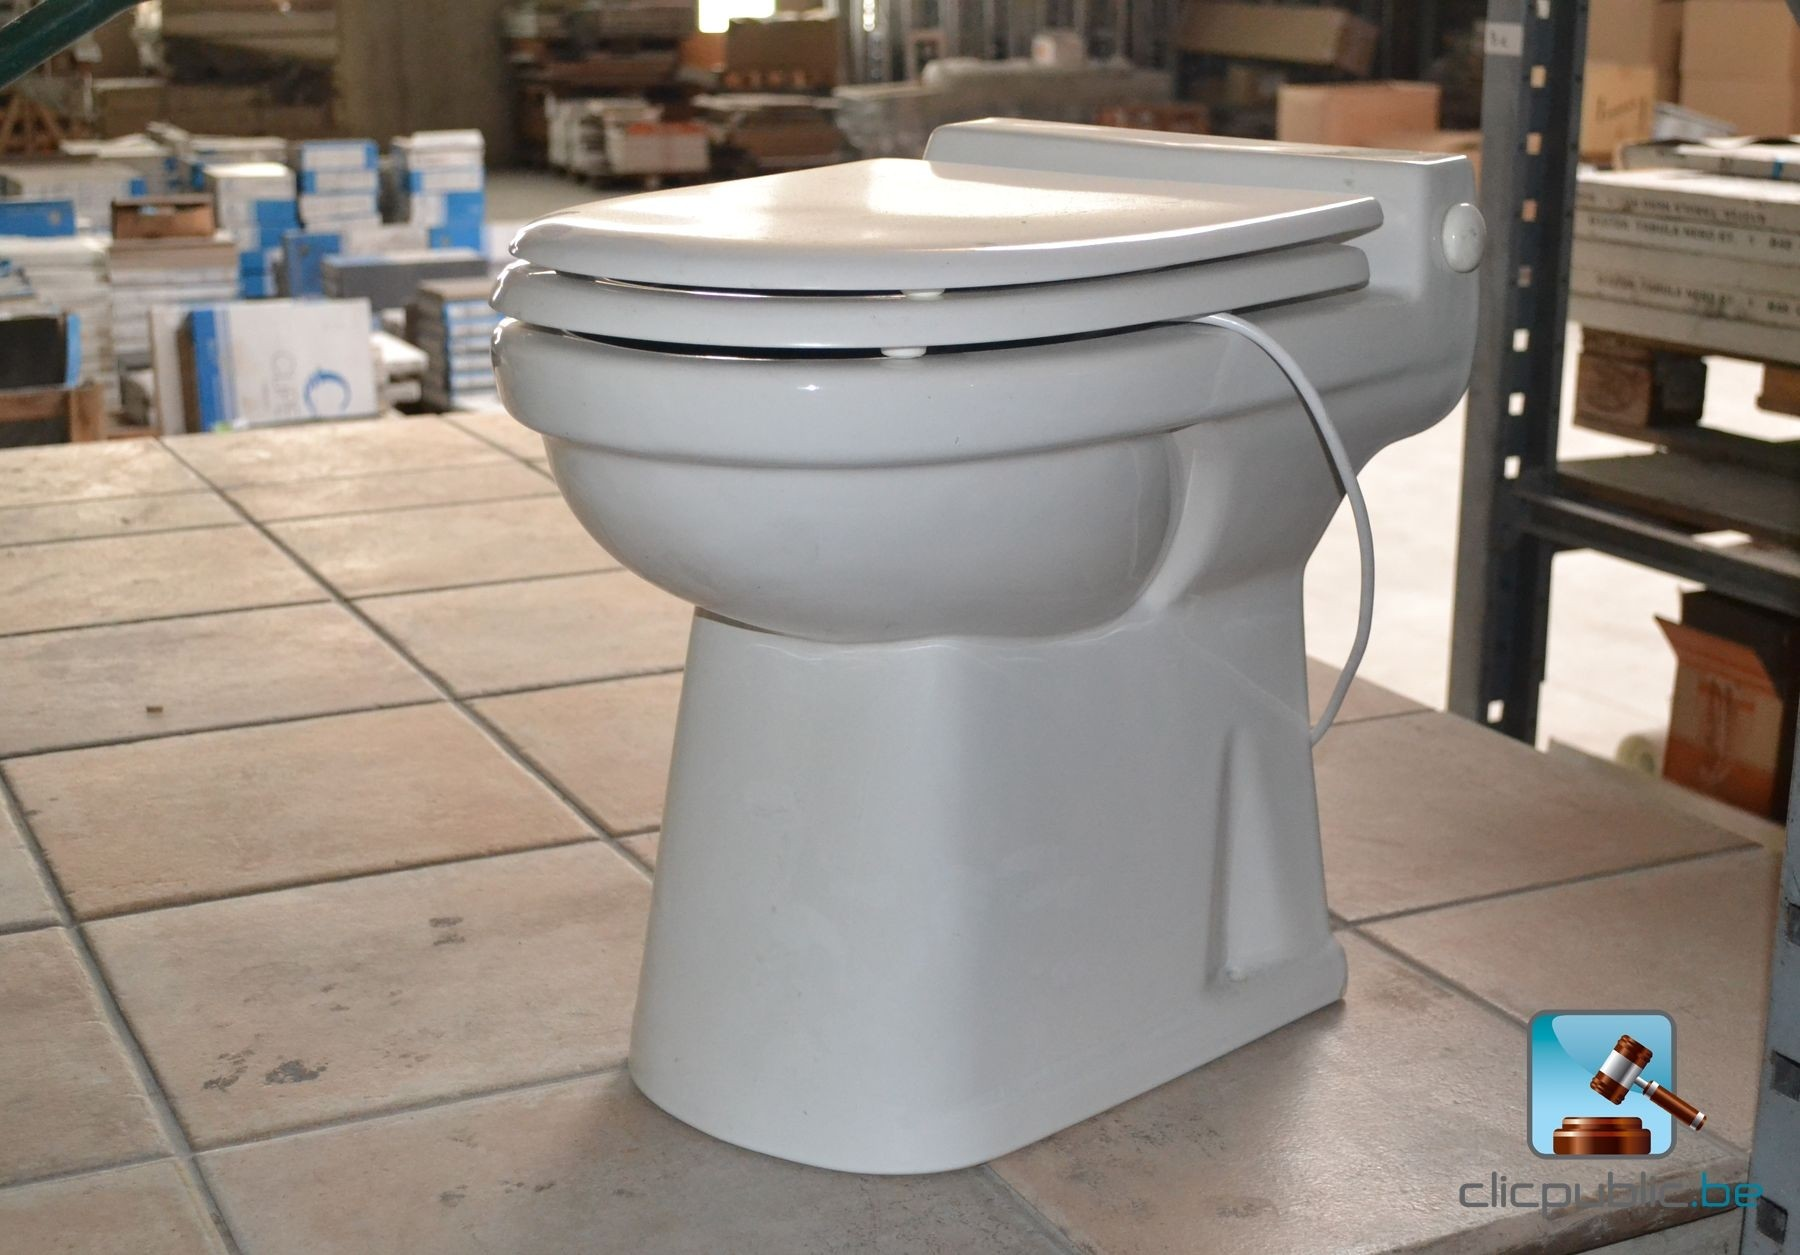 Toilet Bowl For Sale 28 Images Toilet Bowl Without Tank For Sale Philippines Find Brand New